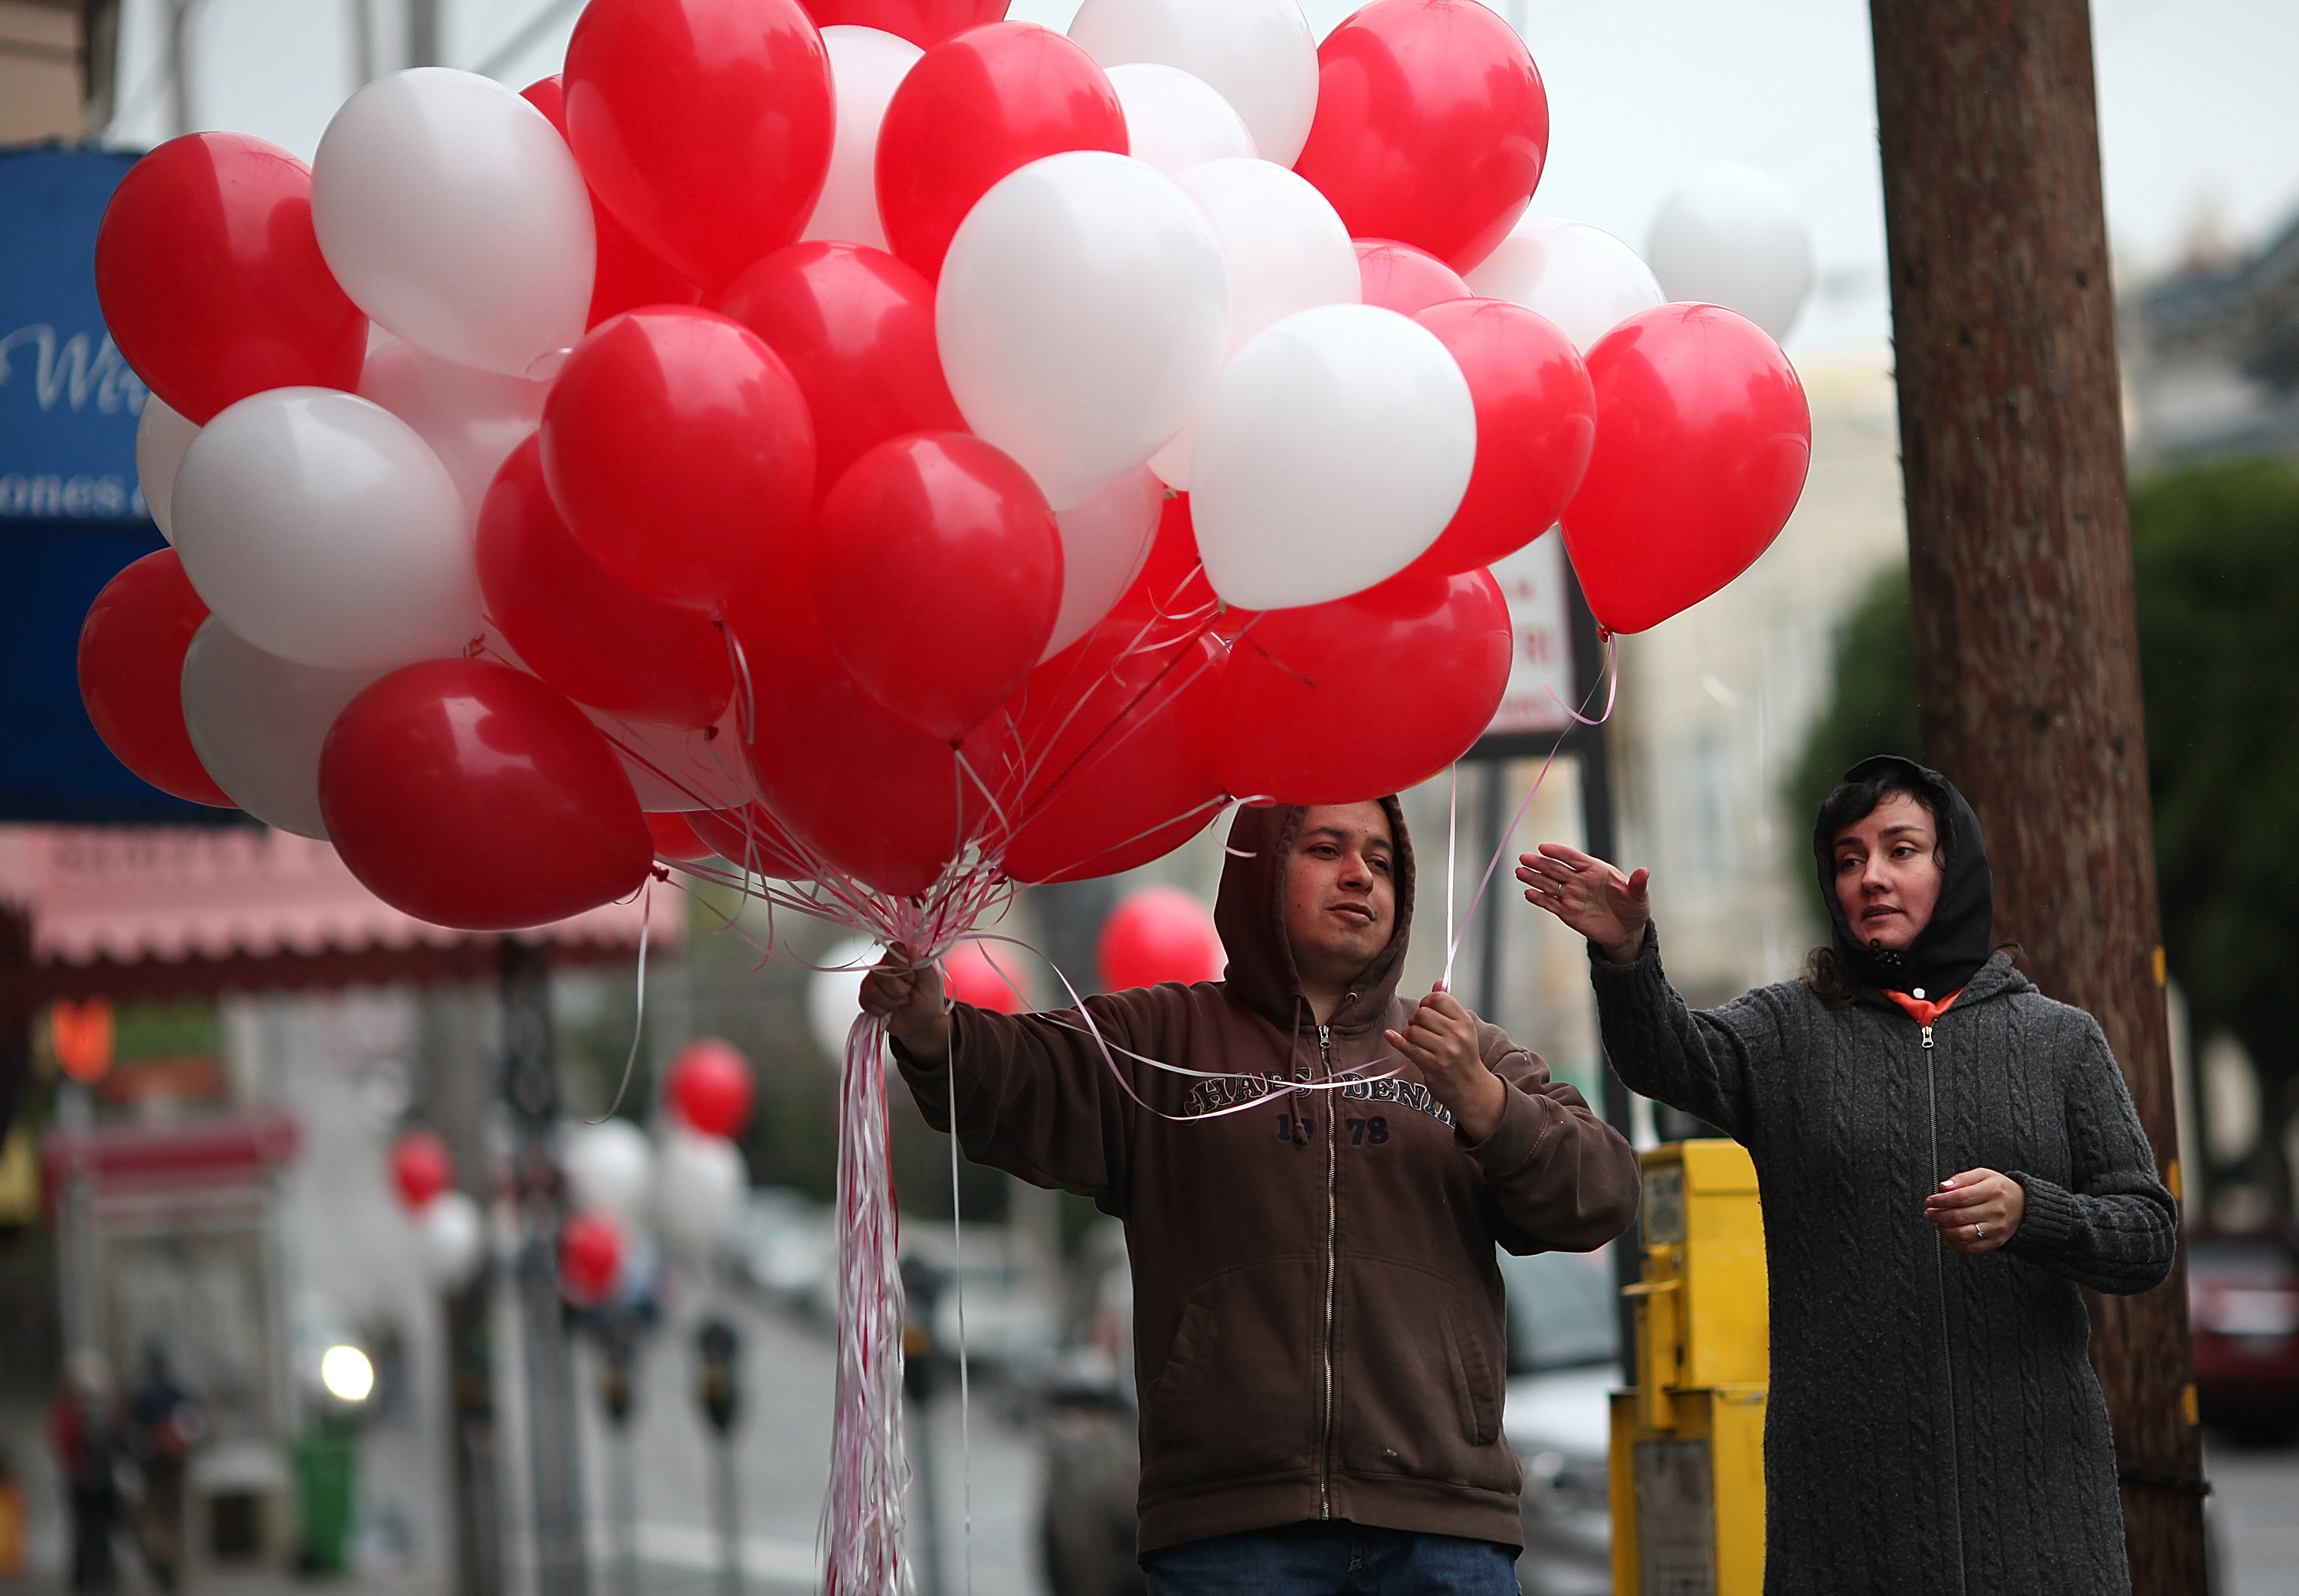 A man hands a balloon to a woman as he decorates Fillmore Street on Valentine's Day in San Francisco.